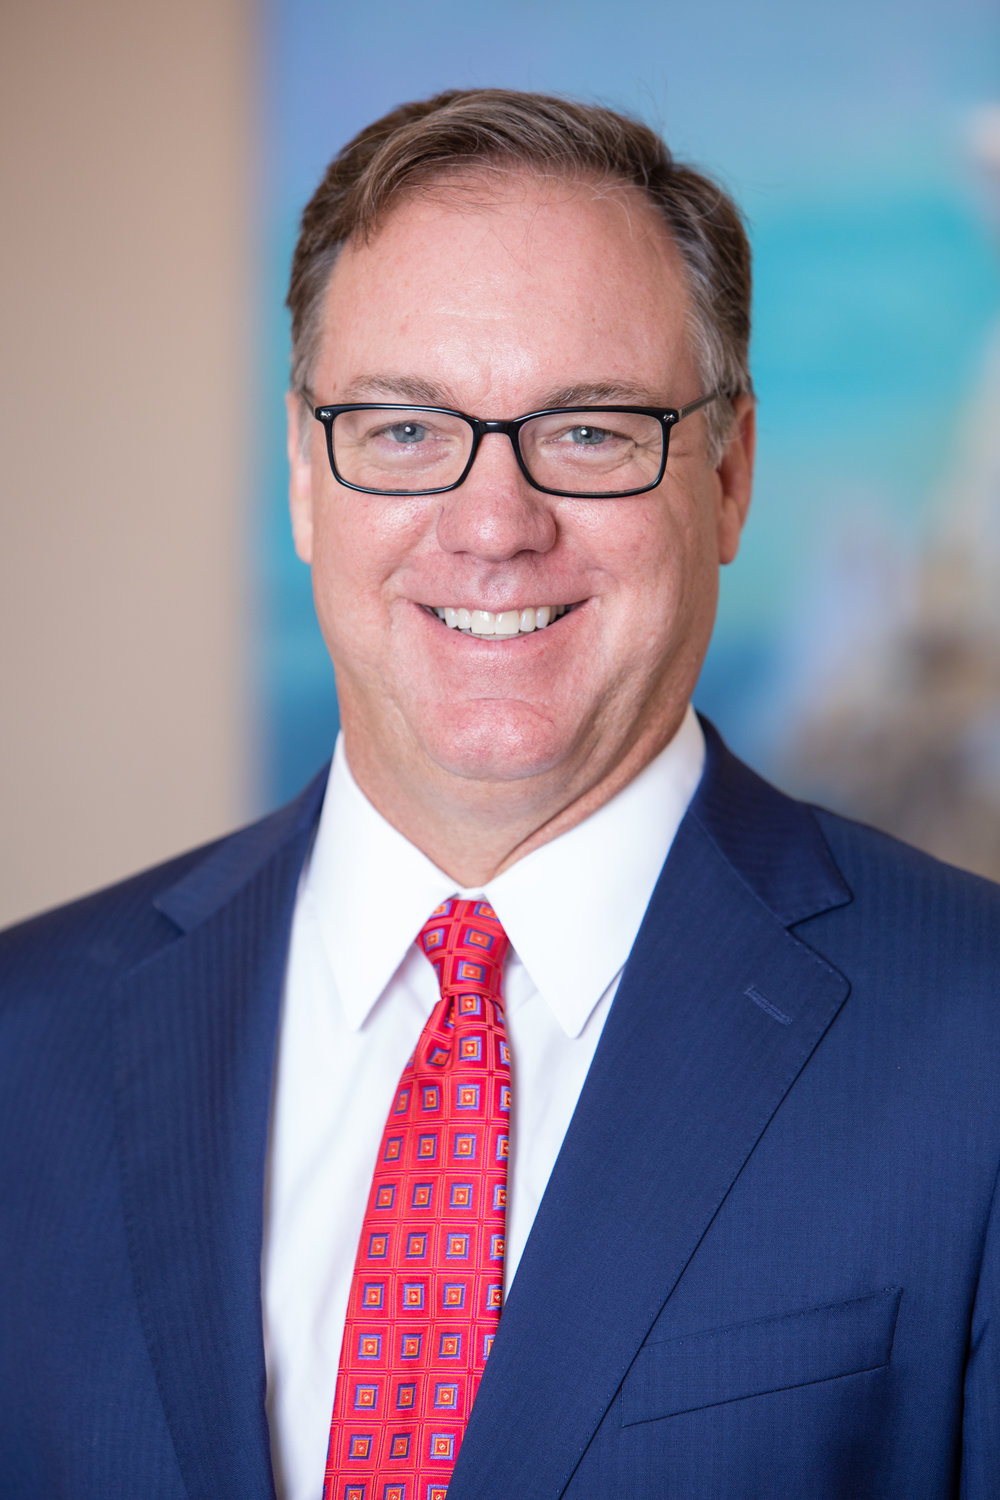 Dale W. Klaus   Dale Klaus has achieved the AV Preeminent rating from Martindale-Hubble, which recognizes lawyers for outstanding achievement, legal ability and professional ethics. His area of focus is on martial law, divorce law, and family law.